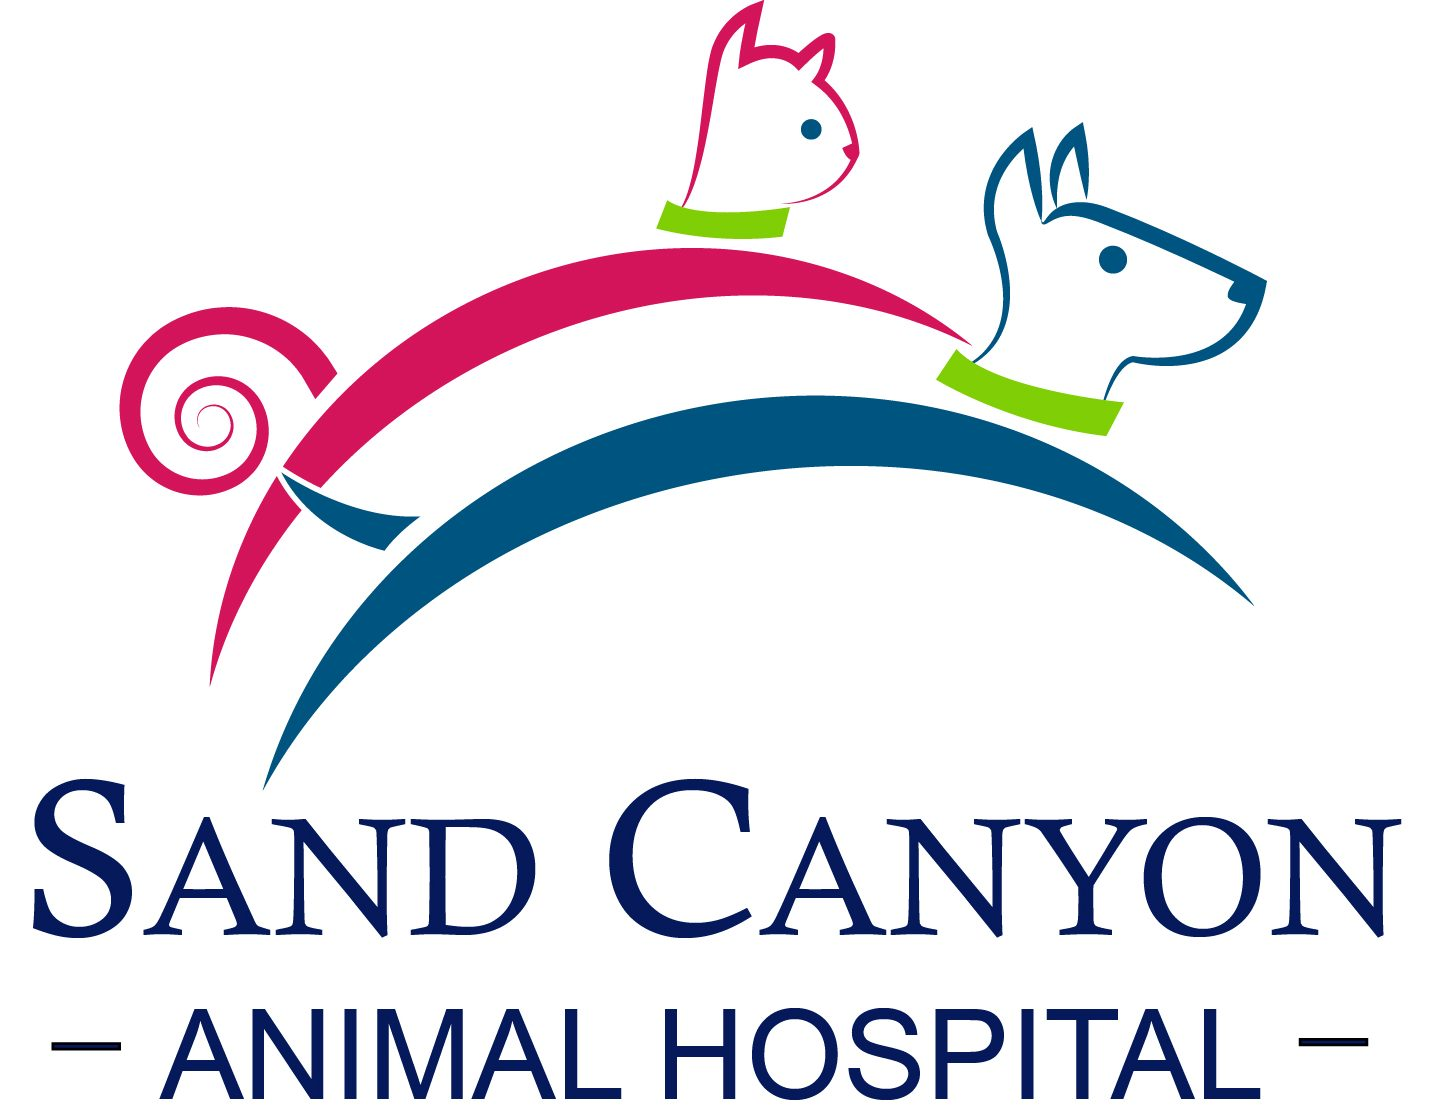 Sand Canyon Animal Hospital